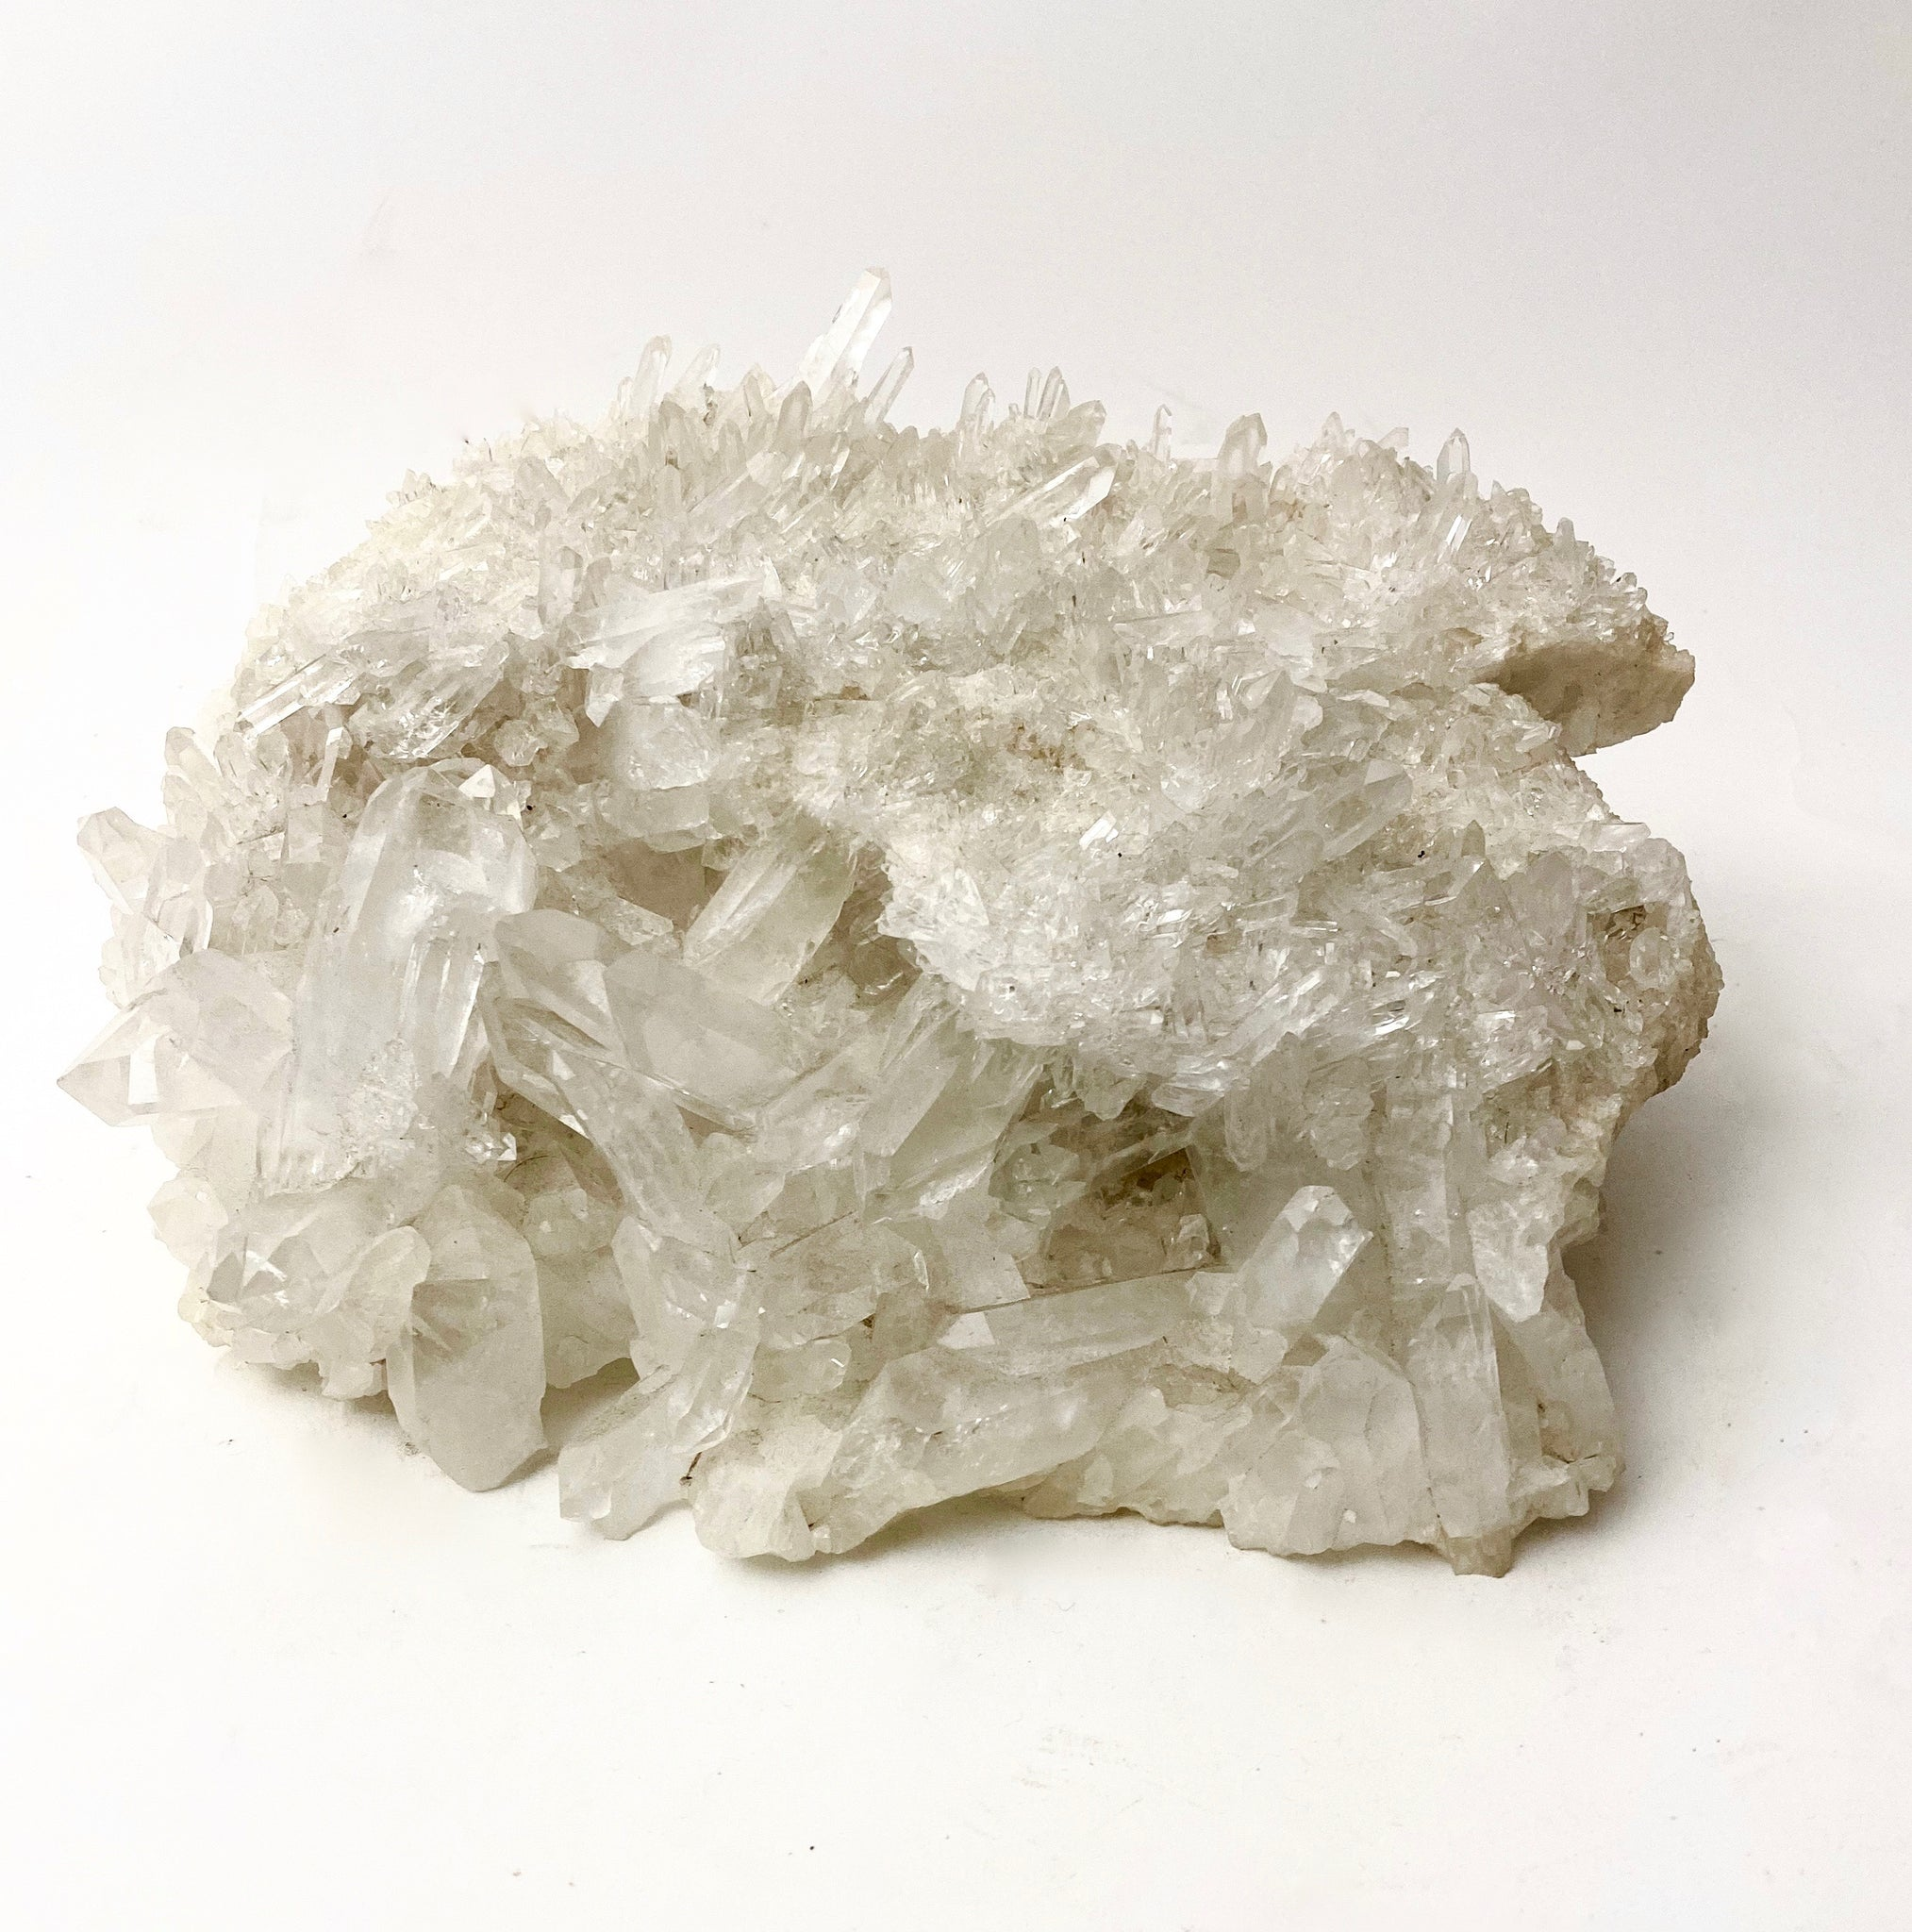 Stunning Brazilian quartz specimen with a multitude of individual points .